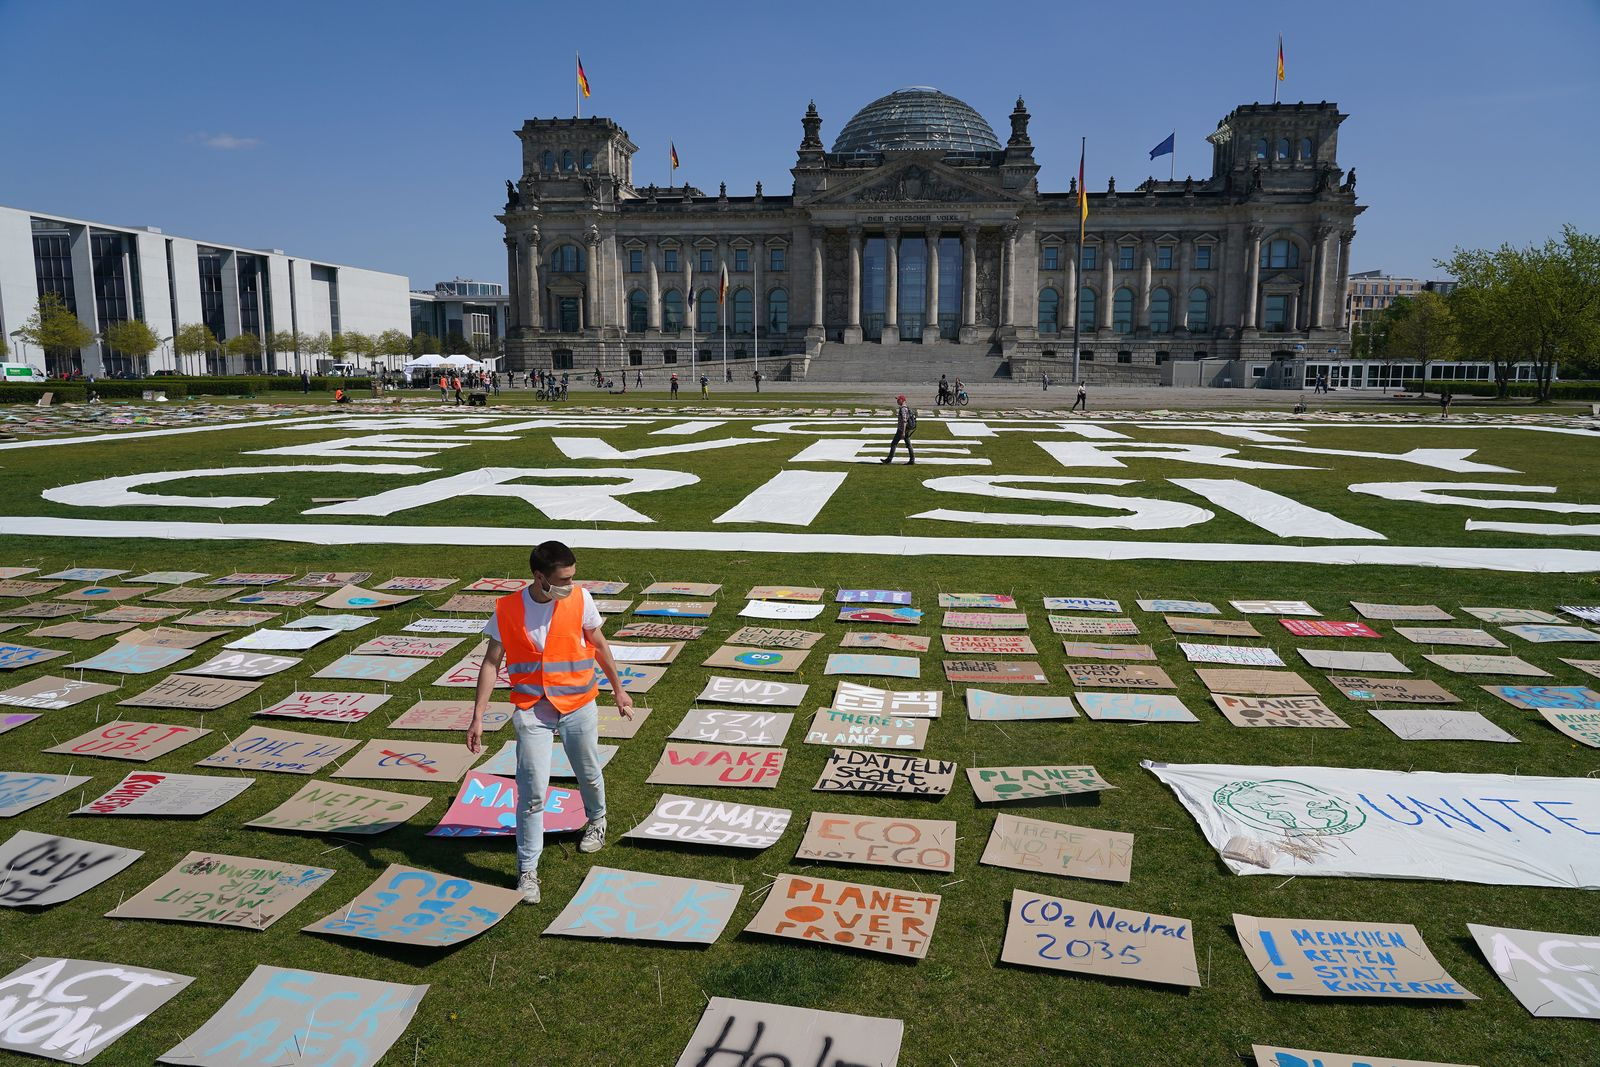 *** BESTPIX *** Fridays For Future Holds Protest At Reichstag During The Coronavirus Crisis